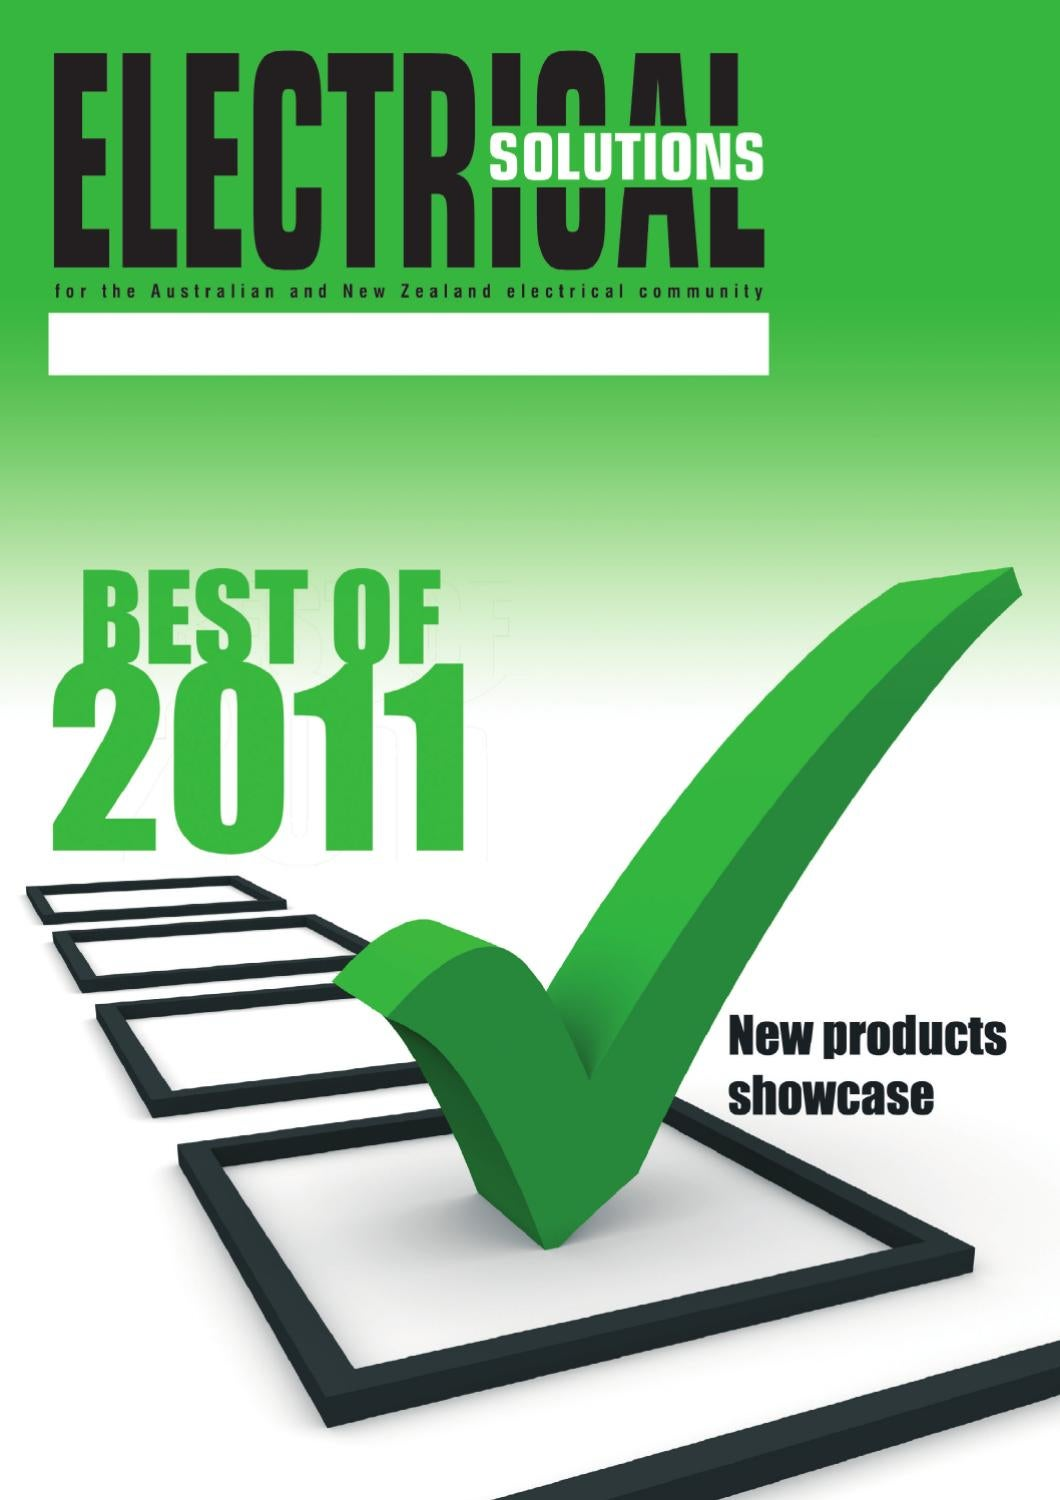 Electrical Solutions Best Of 2011 By Westwick Farrow Media Issuu Figure 42 Matching Potentiometer Lugs To The Schematic Symbol